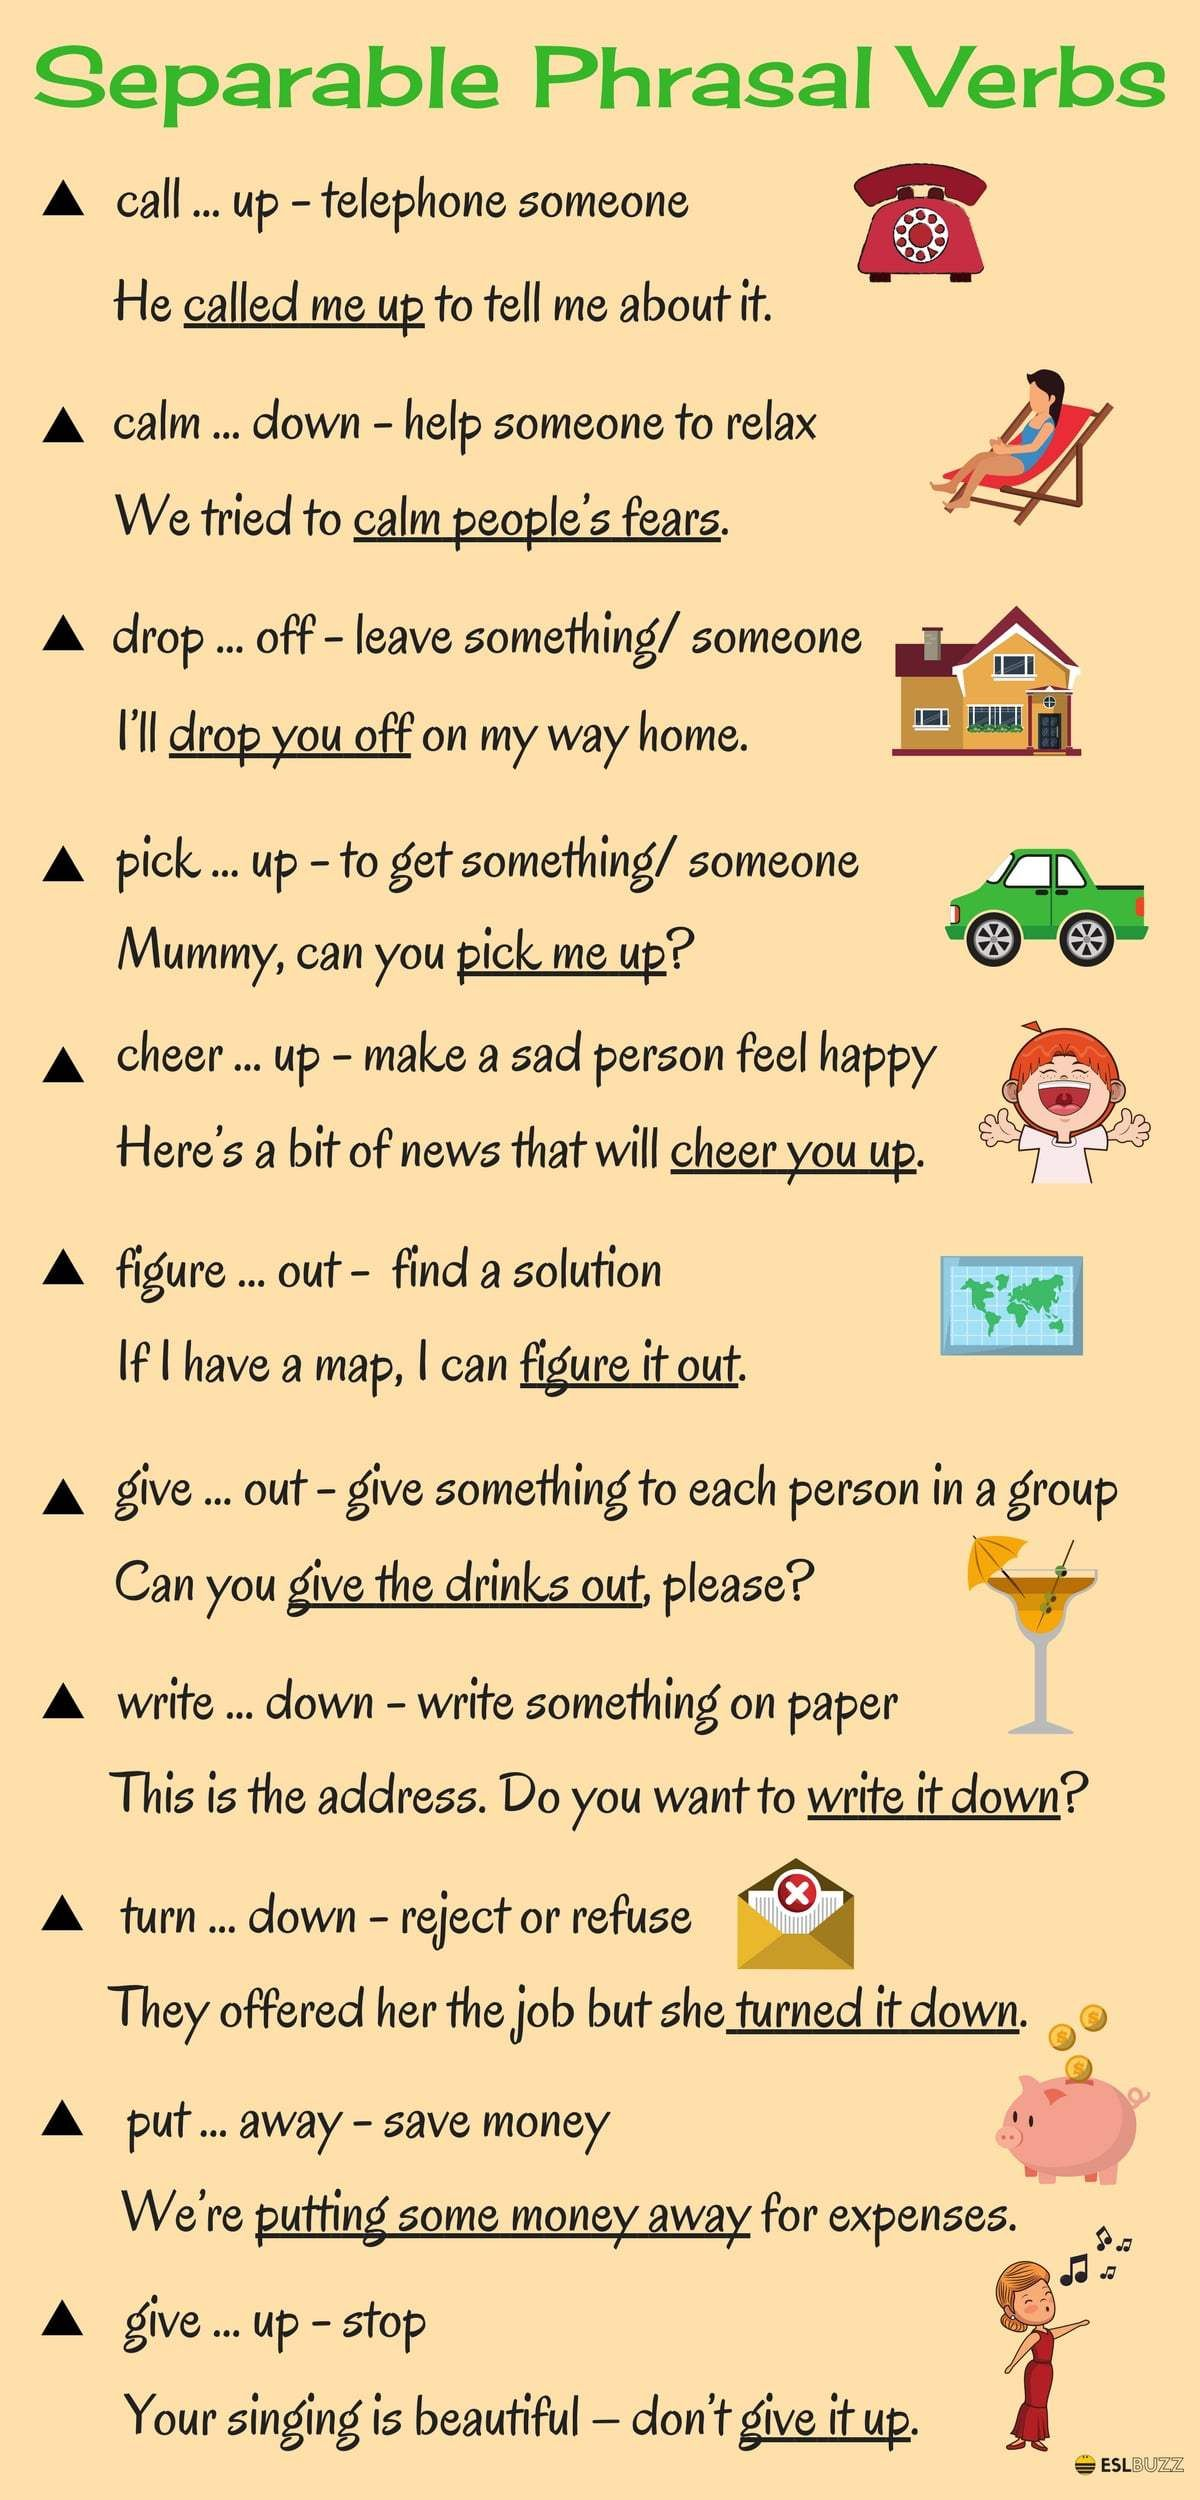 Learn 20 Separable Phrasal Verbs In English Eslbuzz Learning English Learn English English Verbs English Language Learning [ 2500 x 1200 Pixel ]